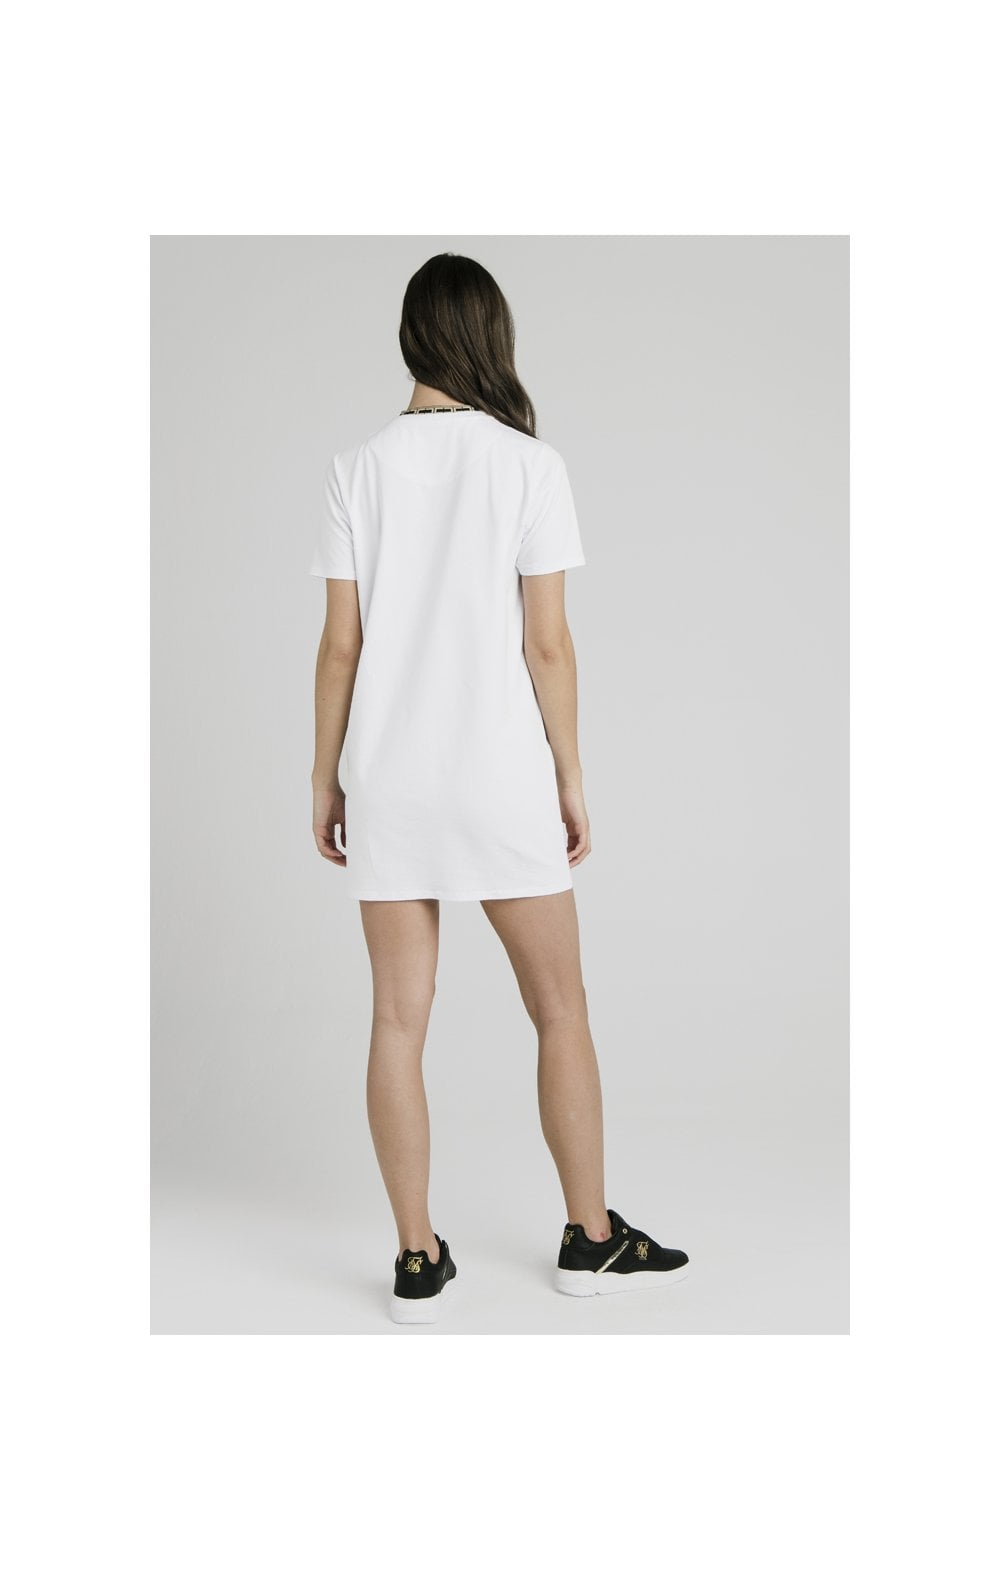 SikSilk Tape Collar T-Shirt Dress - White (5)